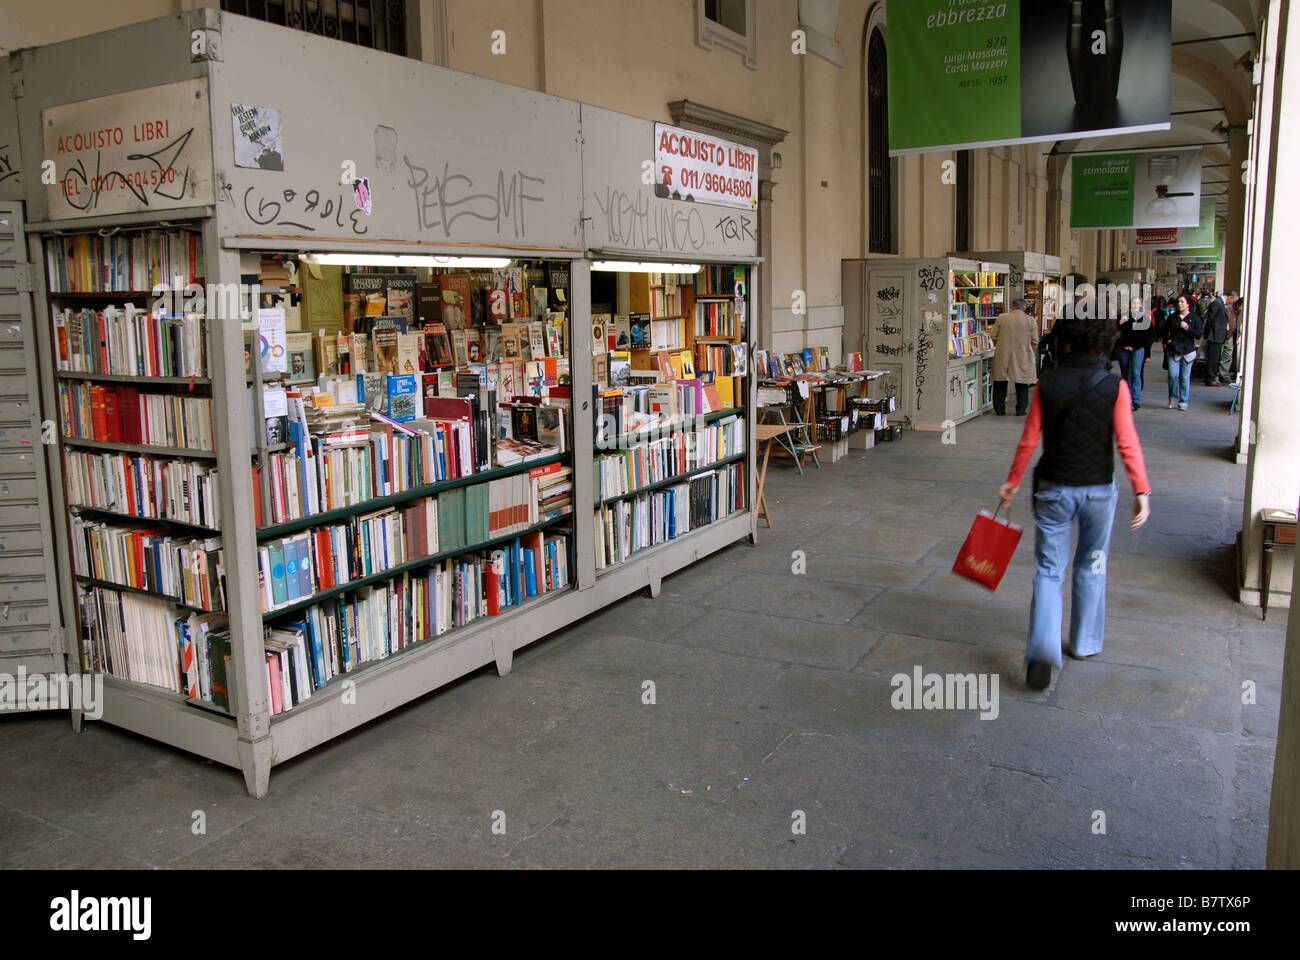 Booksellers on Via Po, Turin, Piedmont, Italy - Stock Image